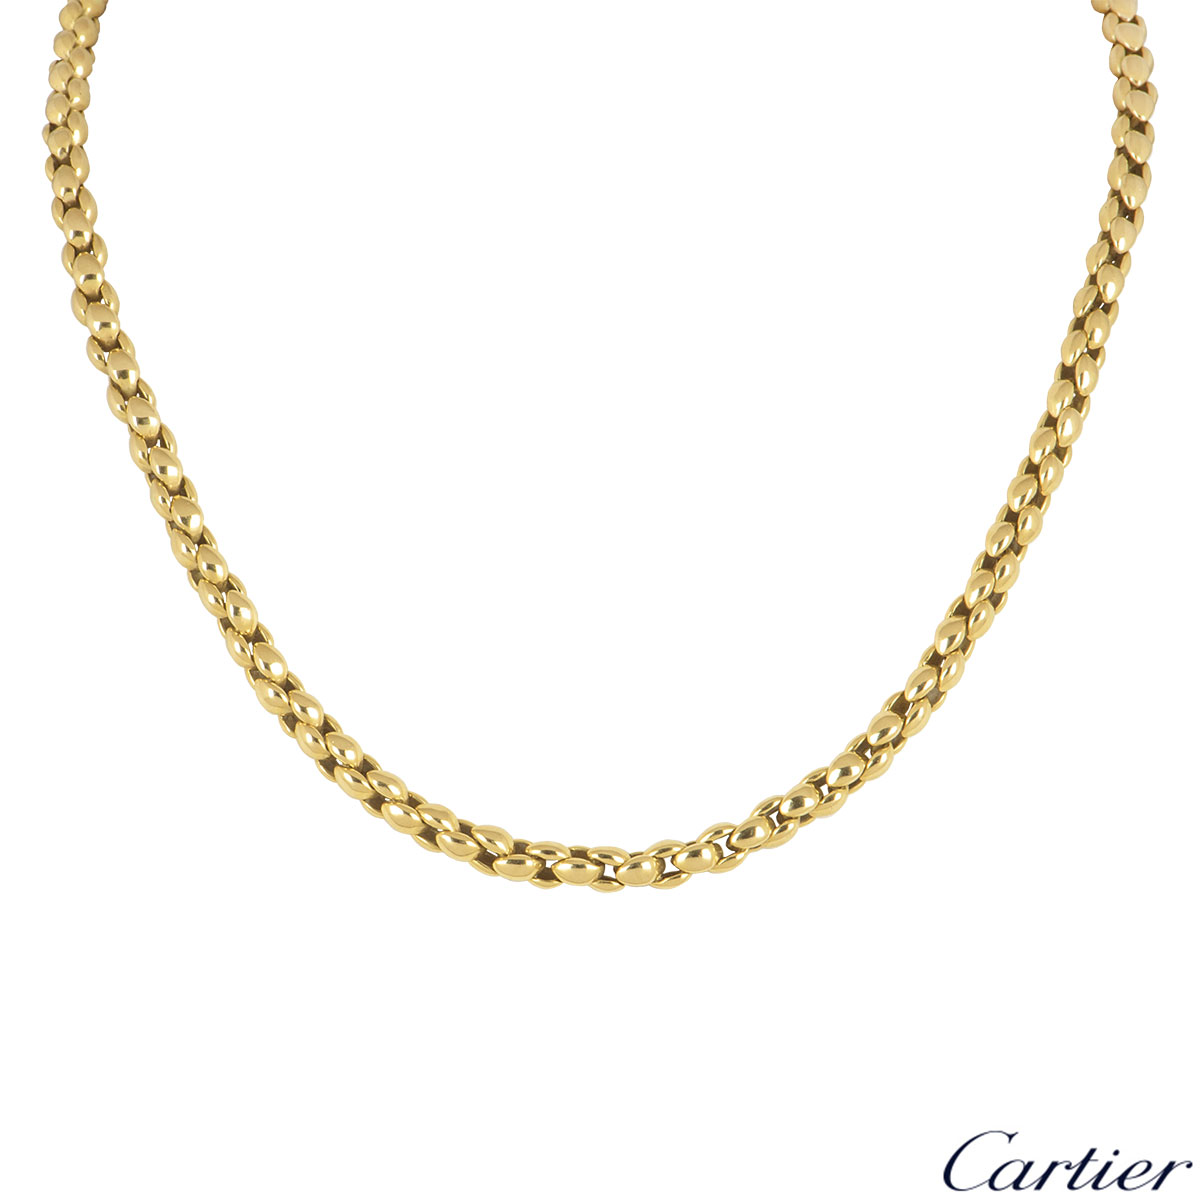 Cartier Yellow Gold Necklace and Bracelet Suite